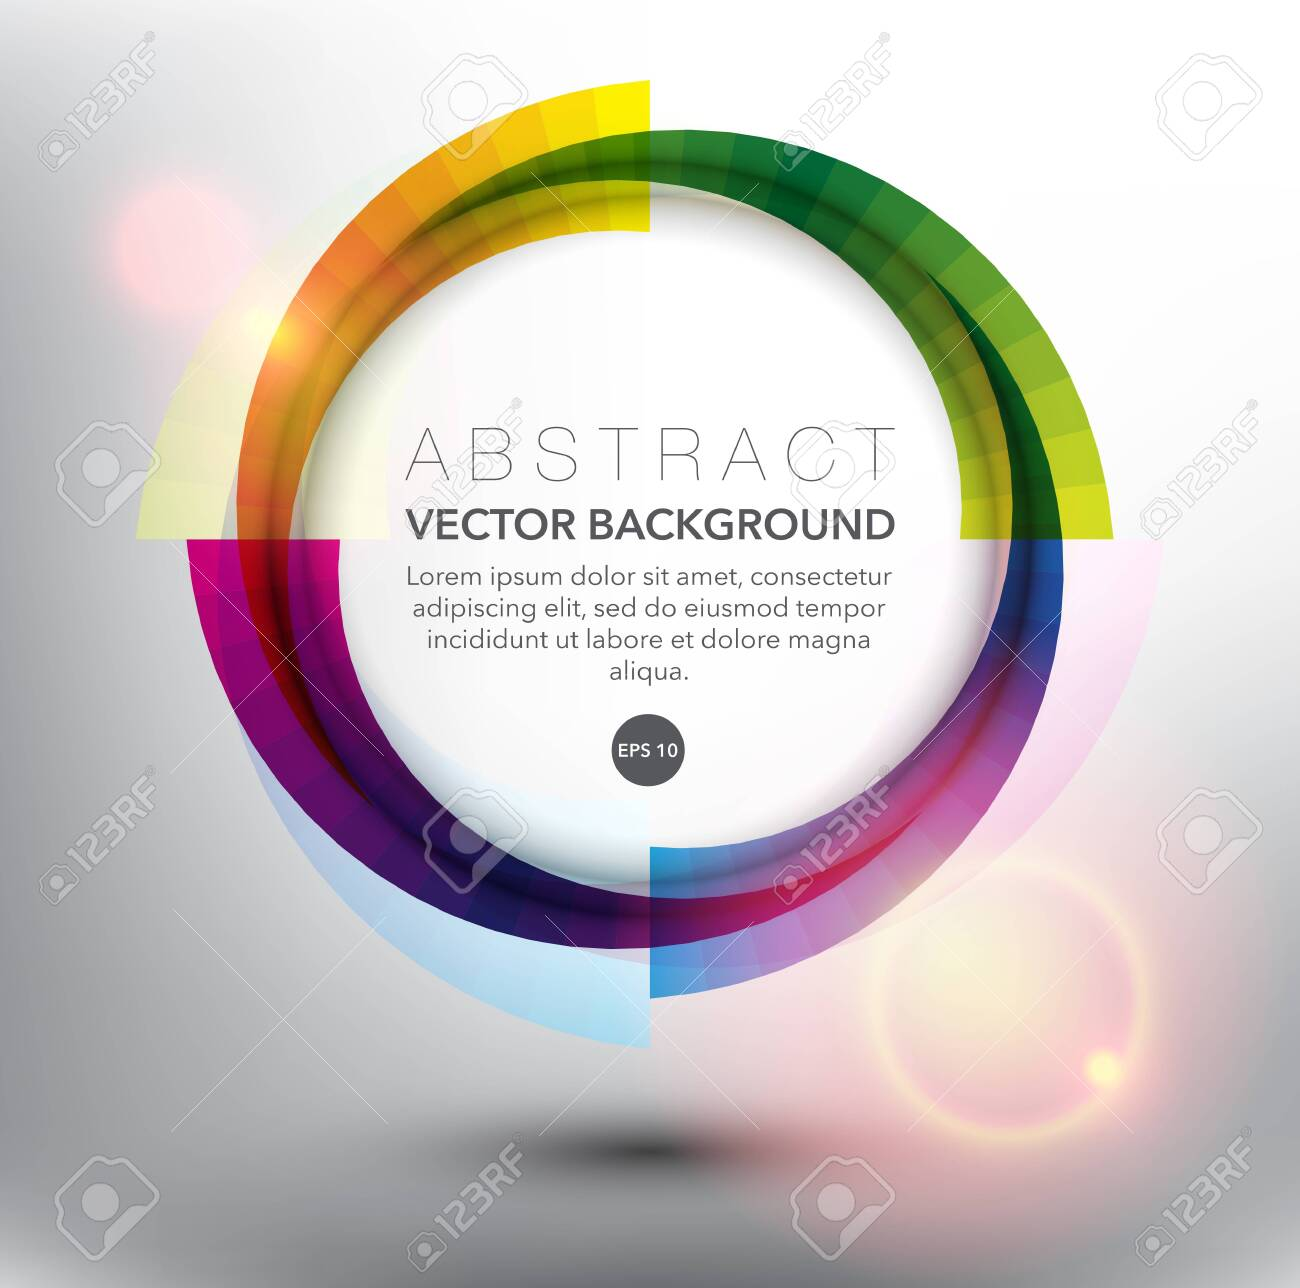 Abstract vector background. Colorful geometric background. Can be used for poster, brochure, flyer and advertisement material. Vector illustration. Eps10. - 141957904